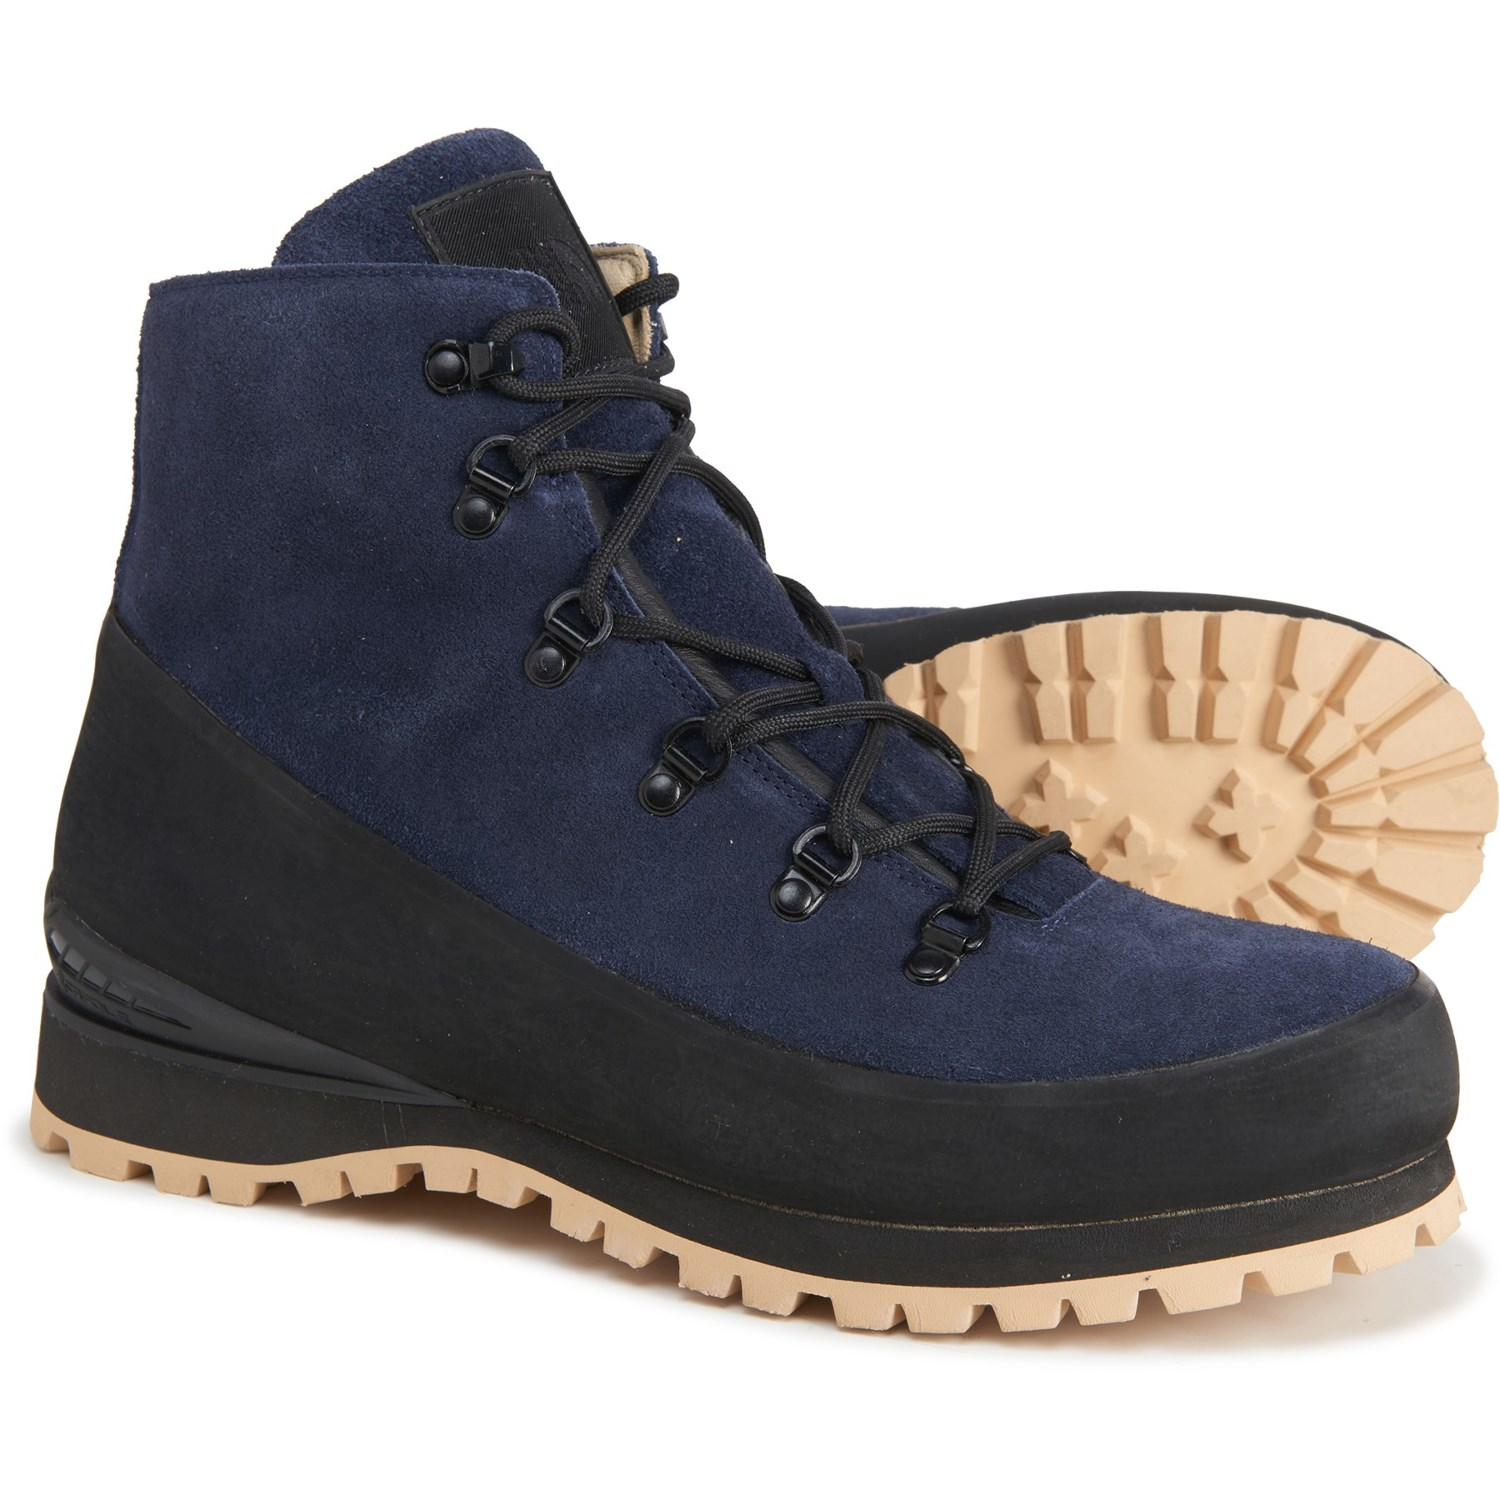 The North Face Made In Italy Cryos Casual Hiking Boots For Men